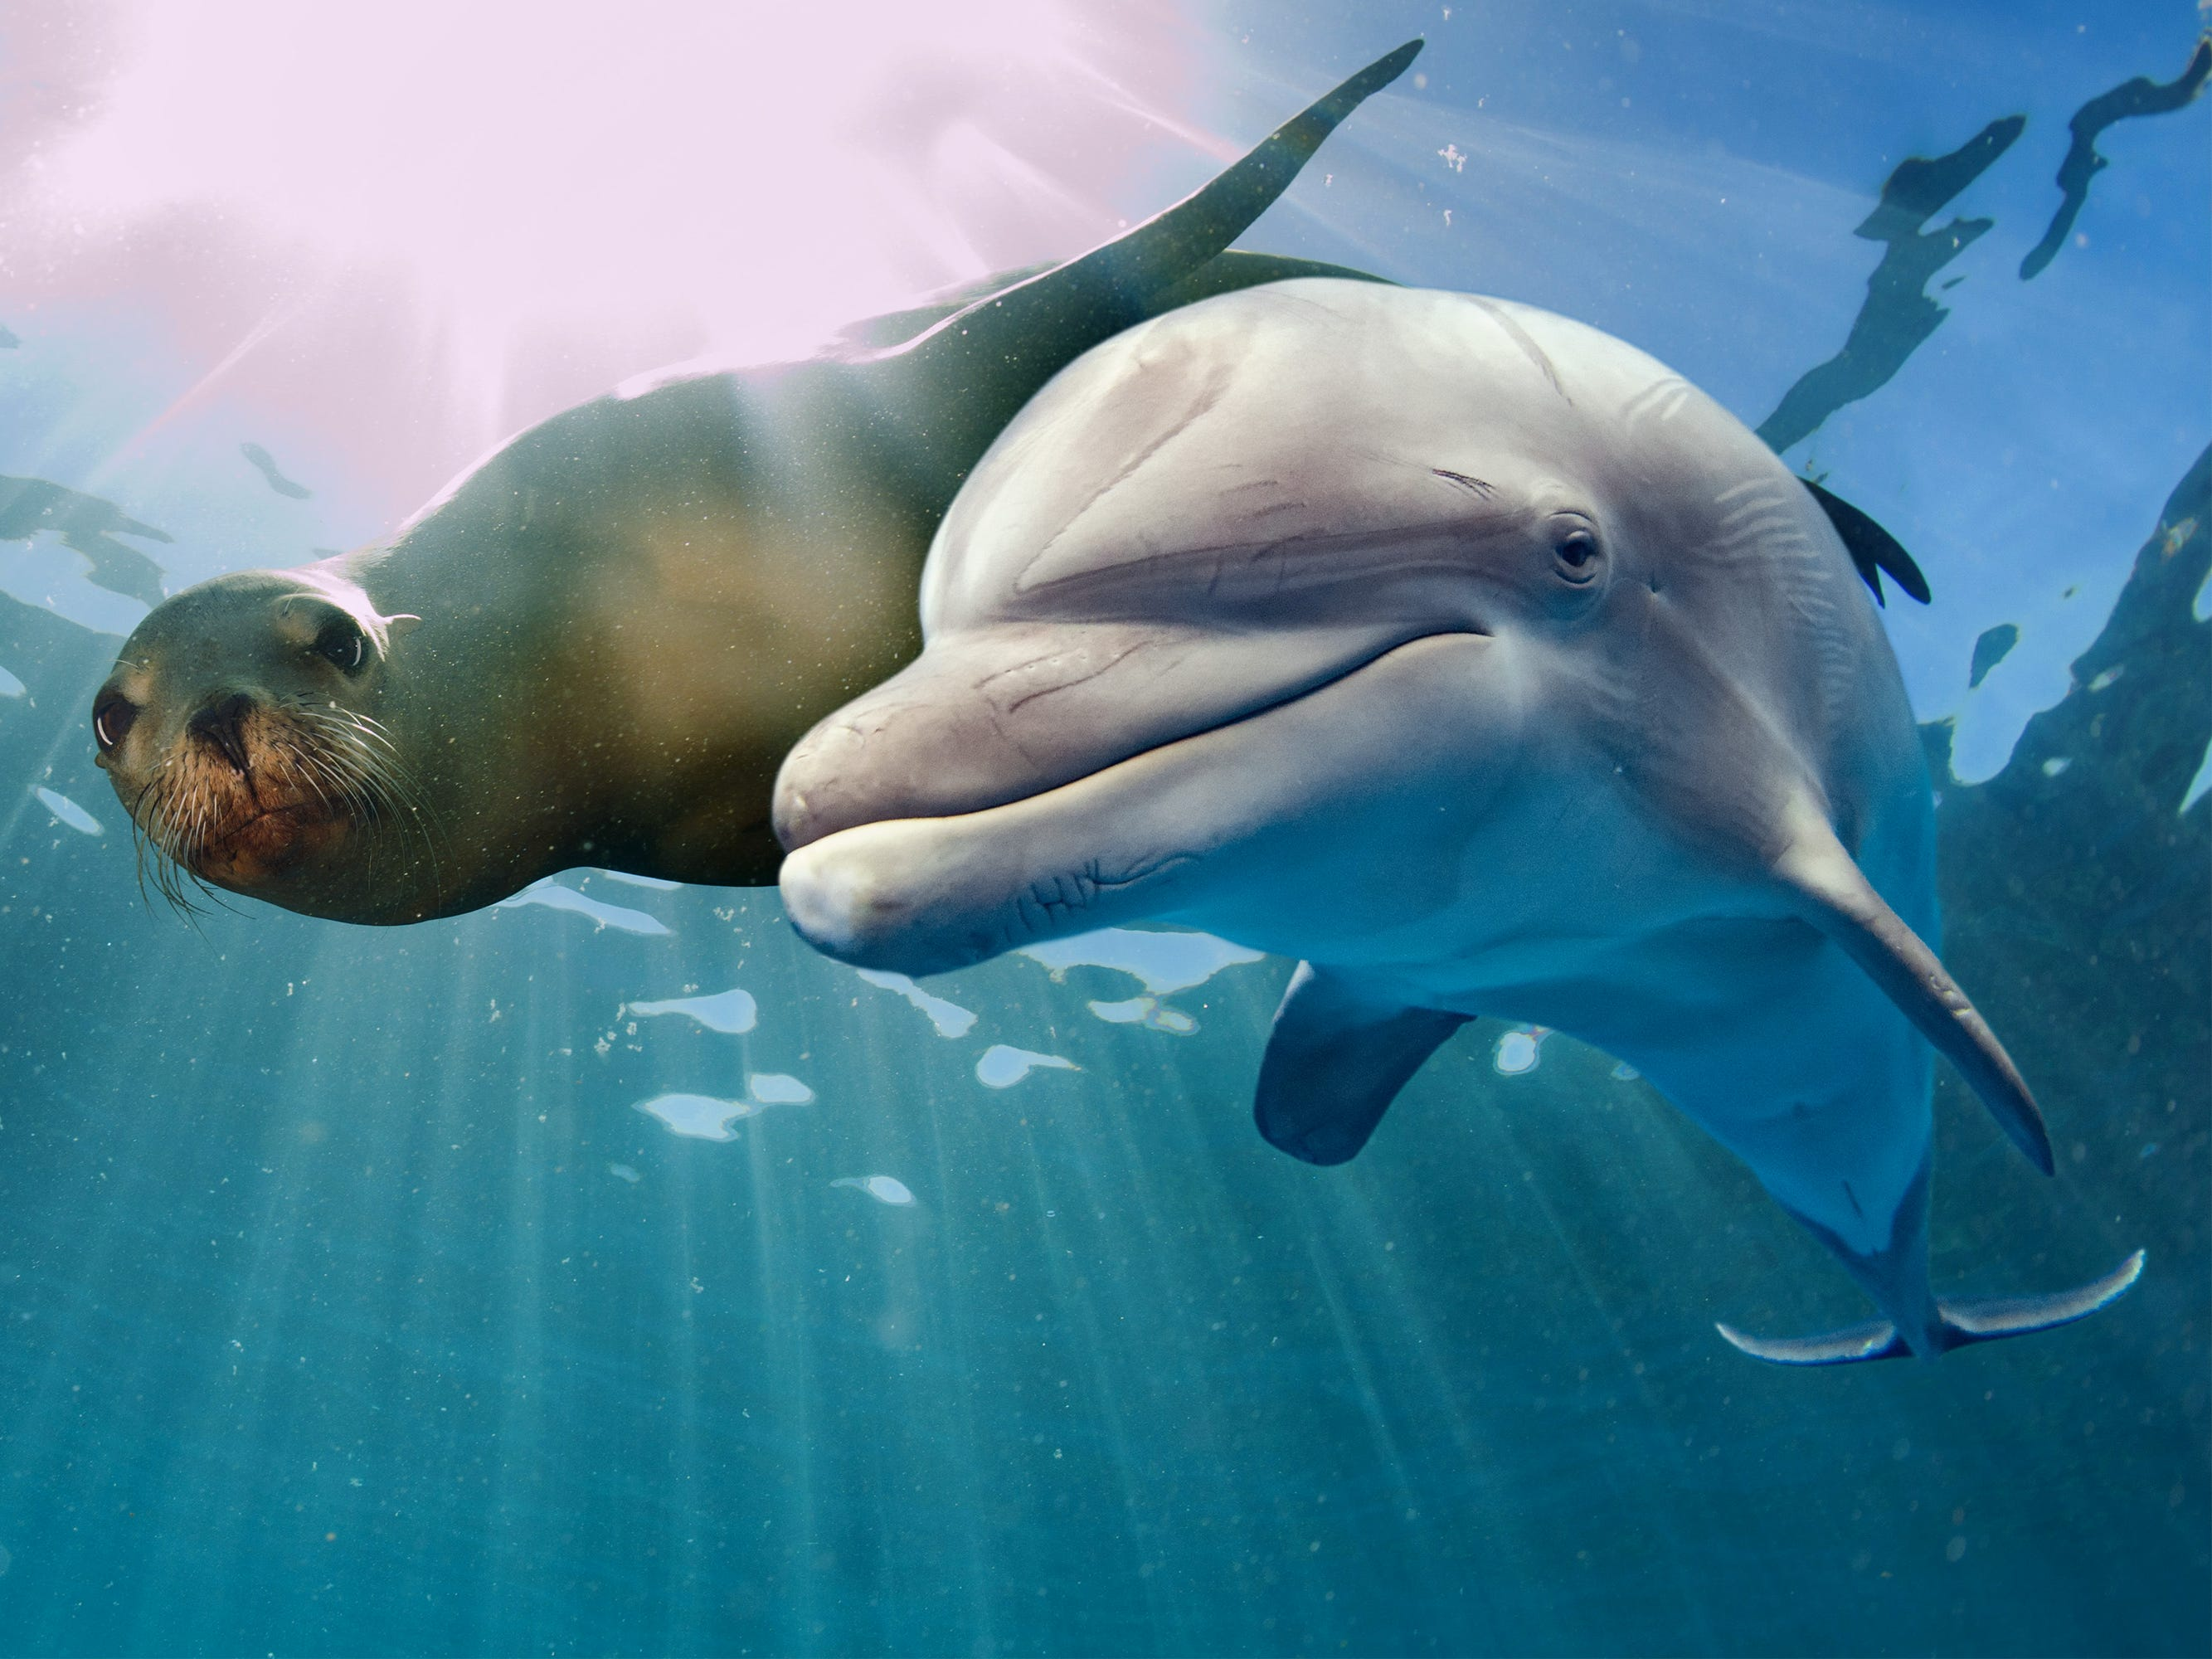 A sea lion and dolphin in the Galapagos Islands, Ecuador.